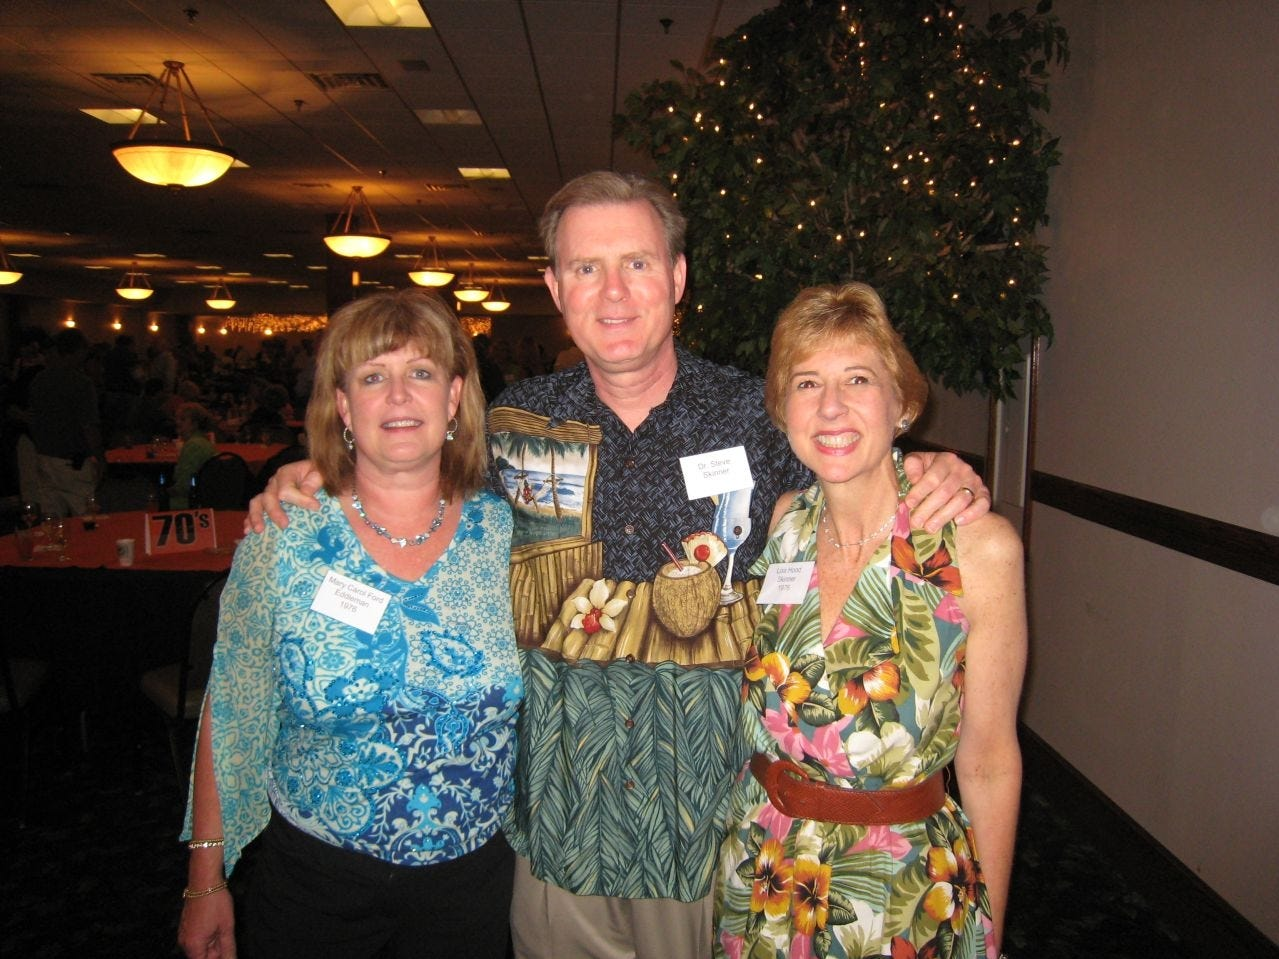 Lisa Hood Skinner, right, with her husband, Steve, and Mary Carol Ford Eddleman, her fellow classmate at Young High and later sorority sister at UT, enjoys a good time at the recent Big, Fat Young High Reunion.